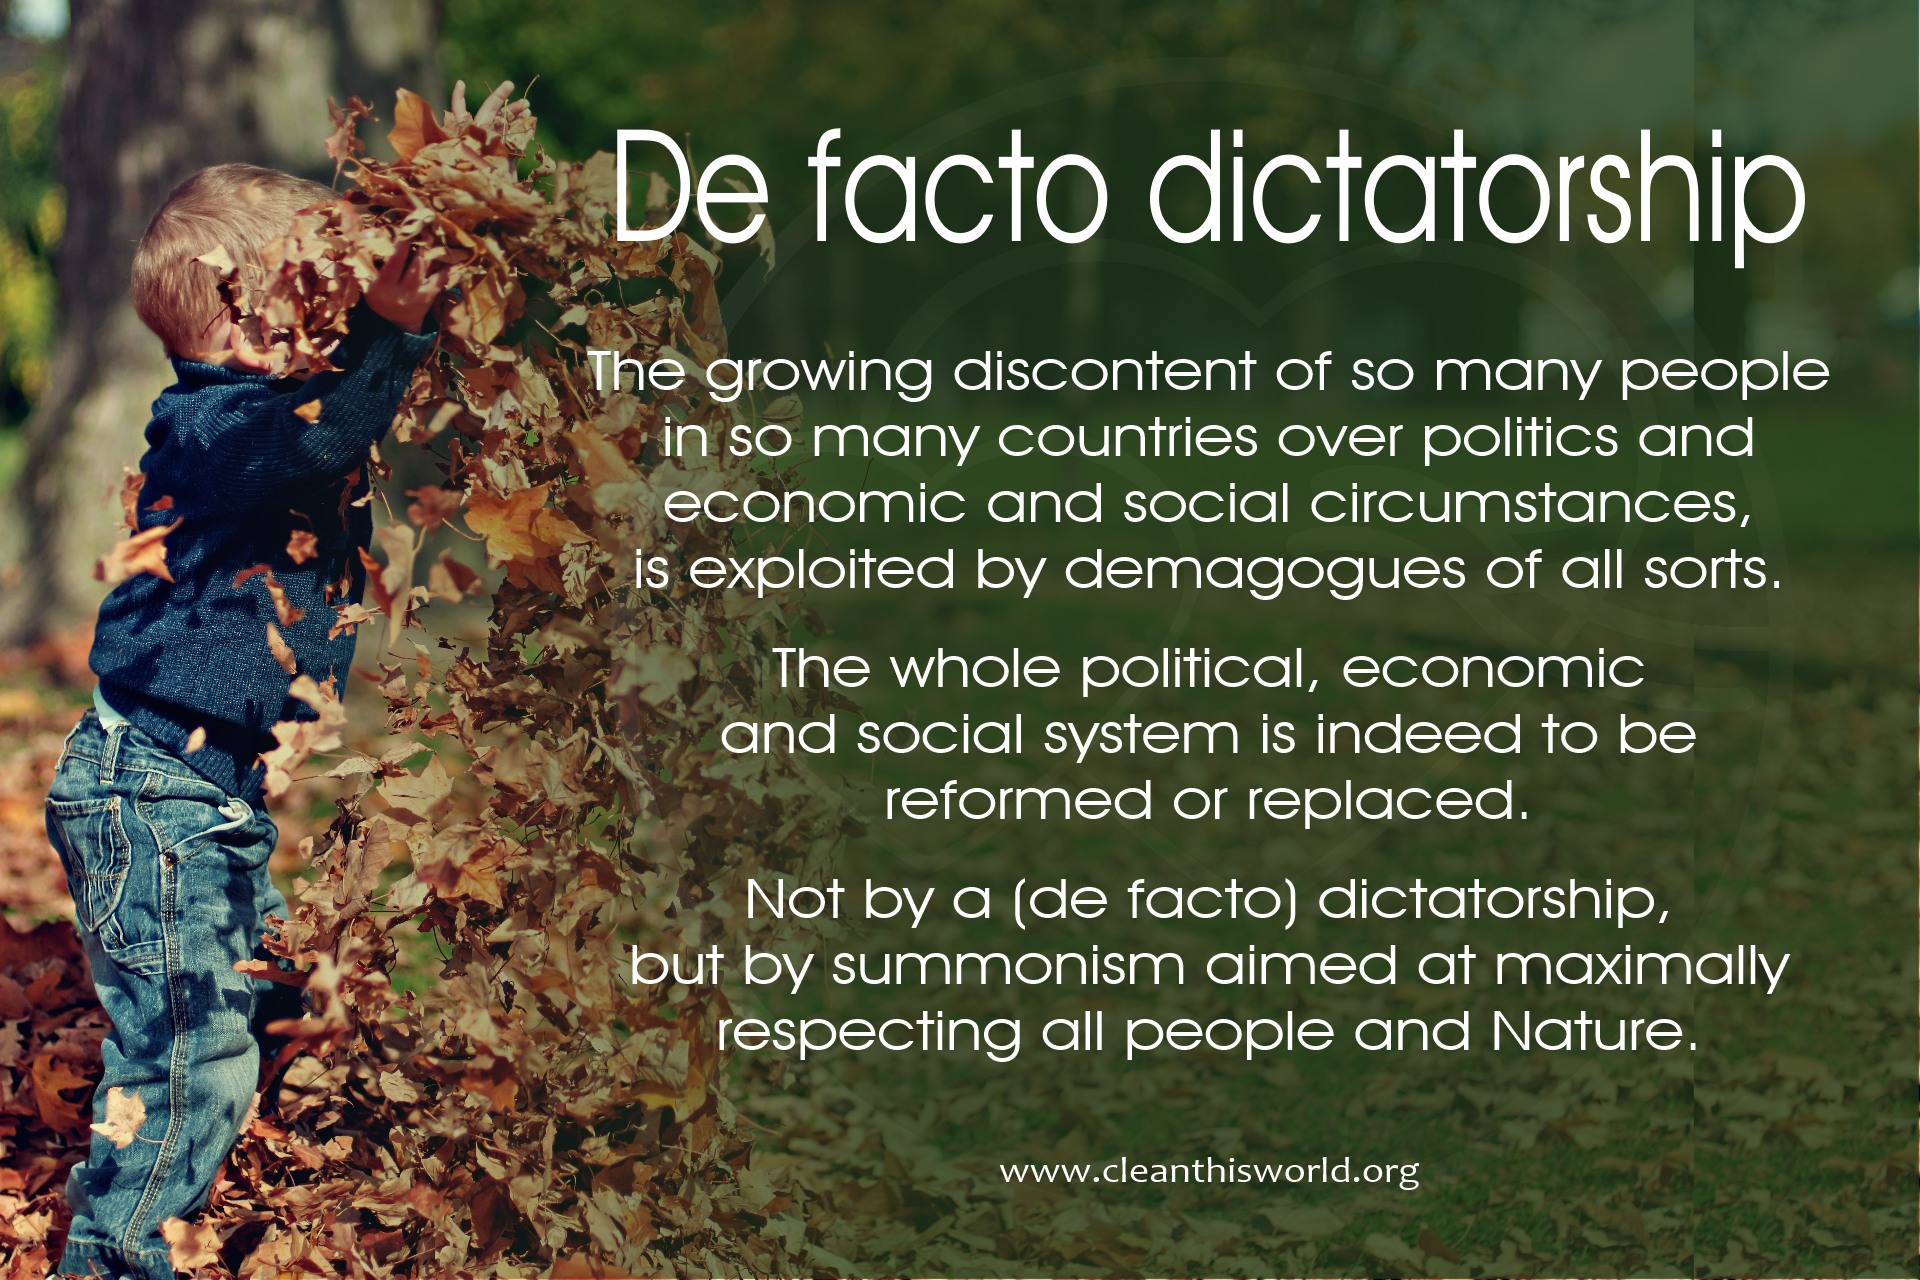 De facto dictatorship